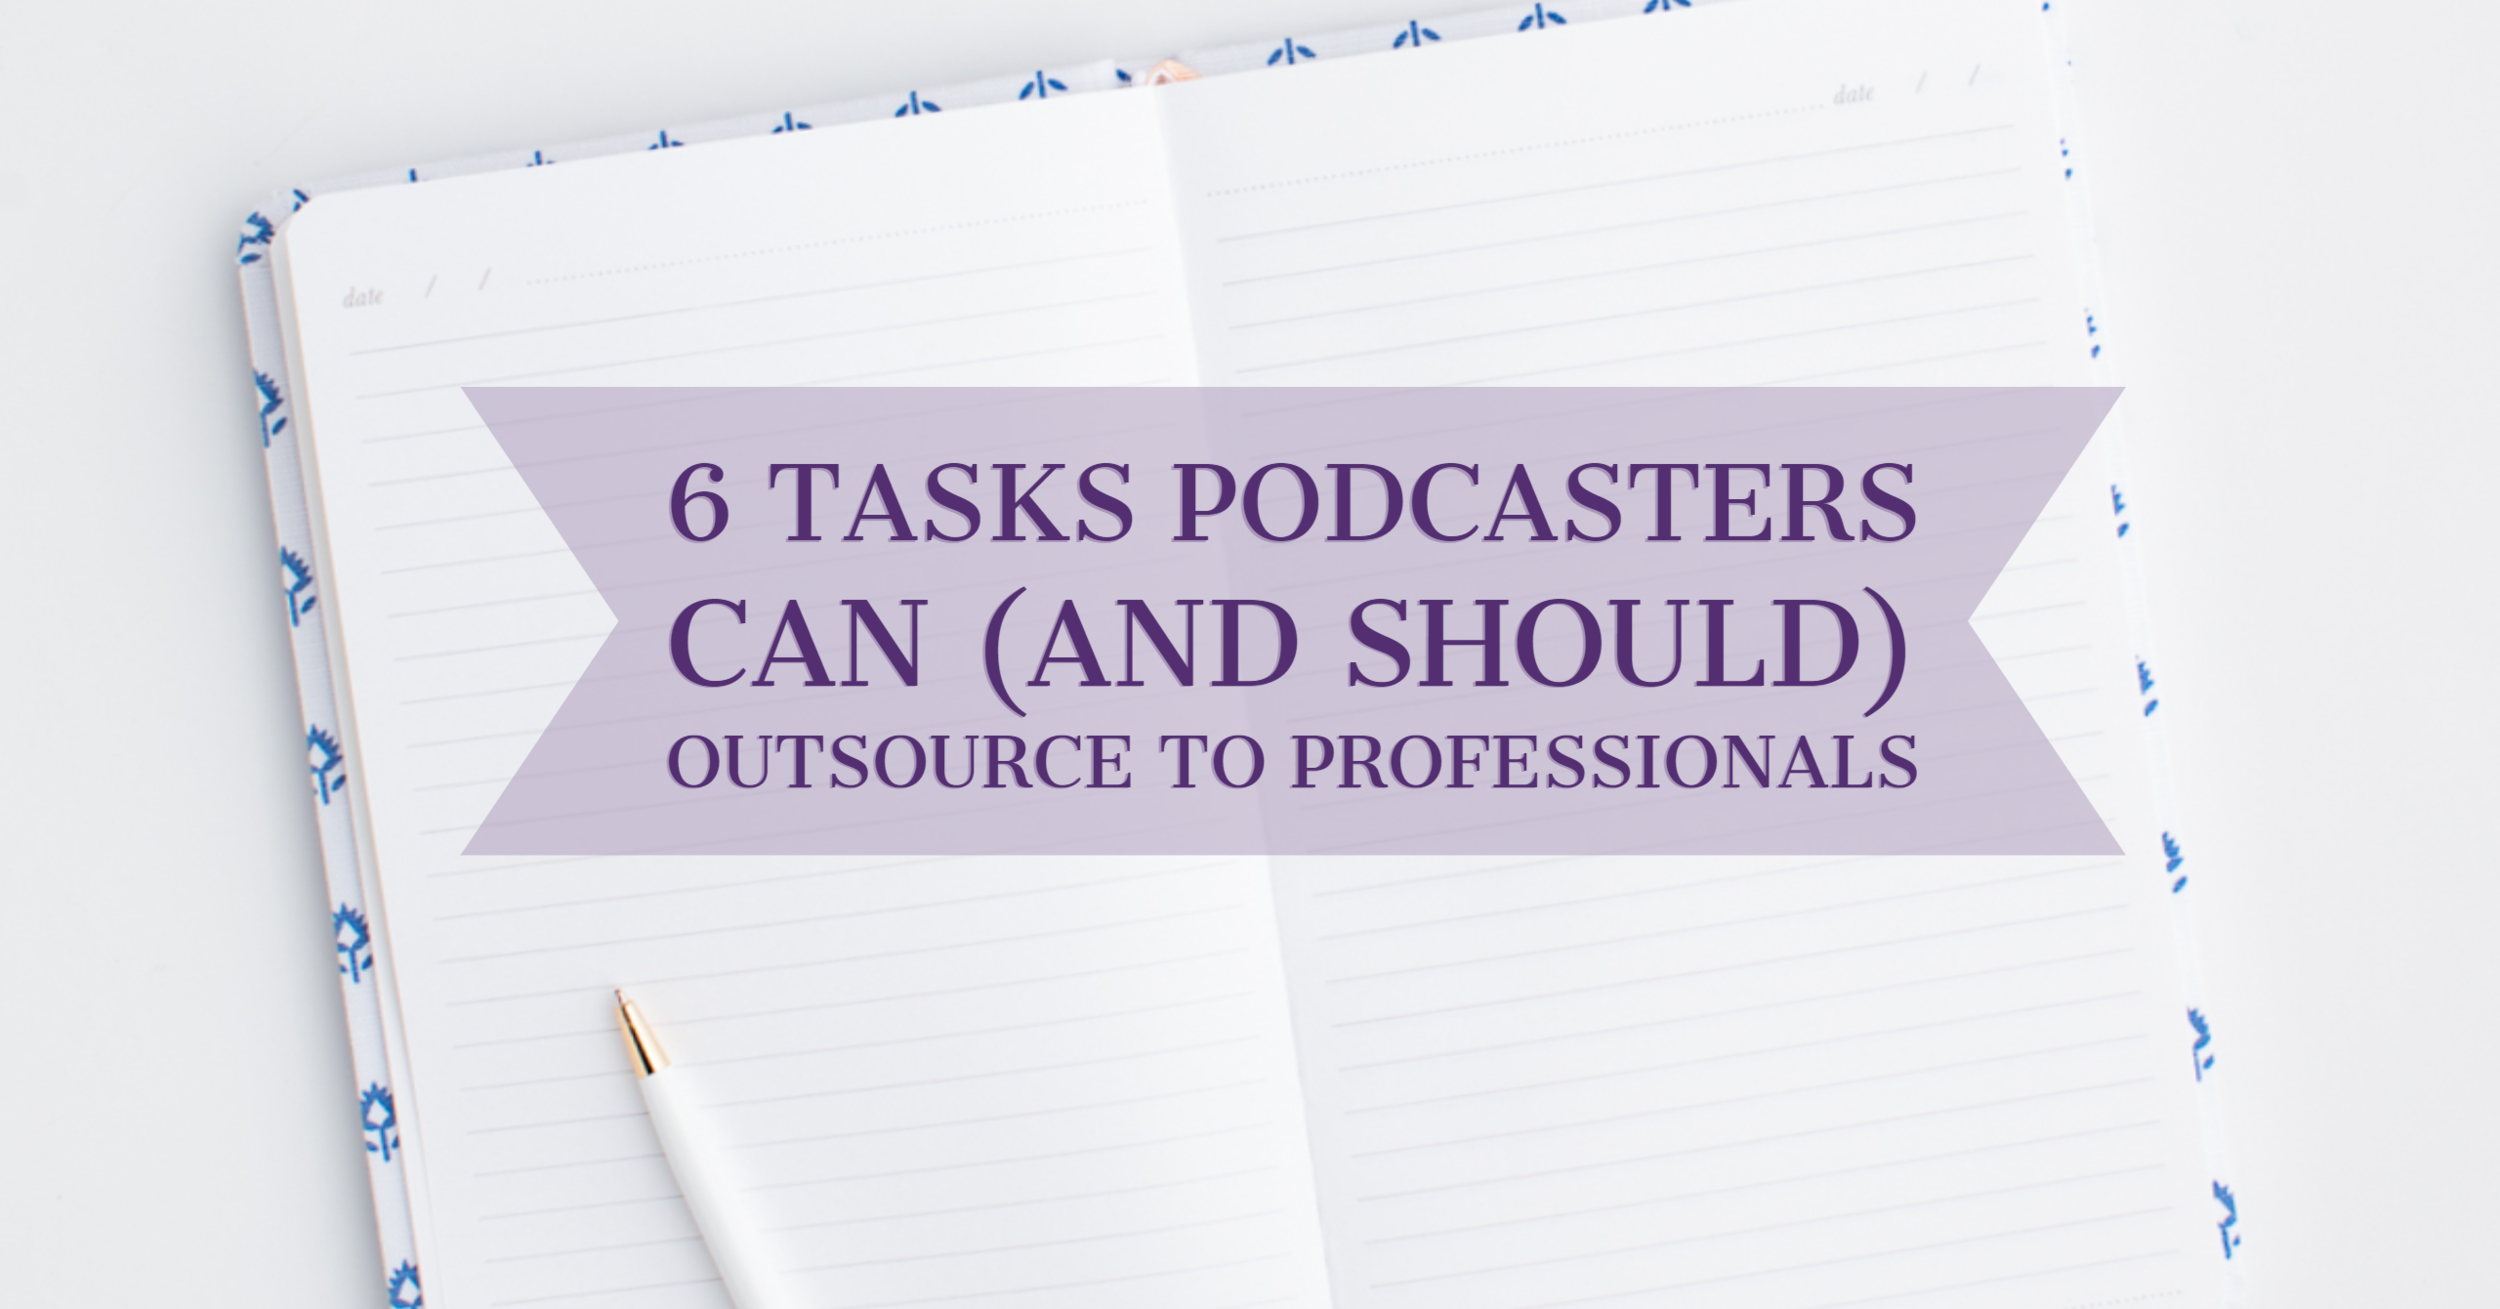 [Blog Post] 6 Tasks Podcasters Can (and SHOULD) Outsource to Professionals.png